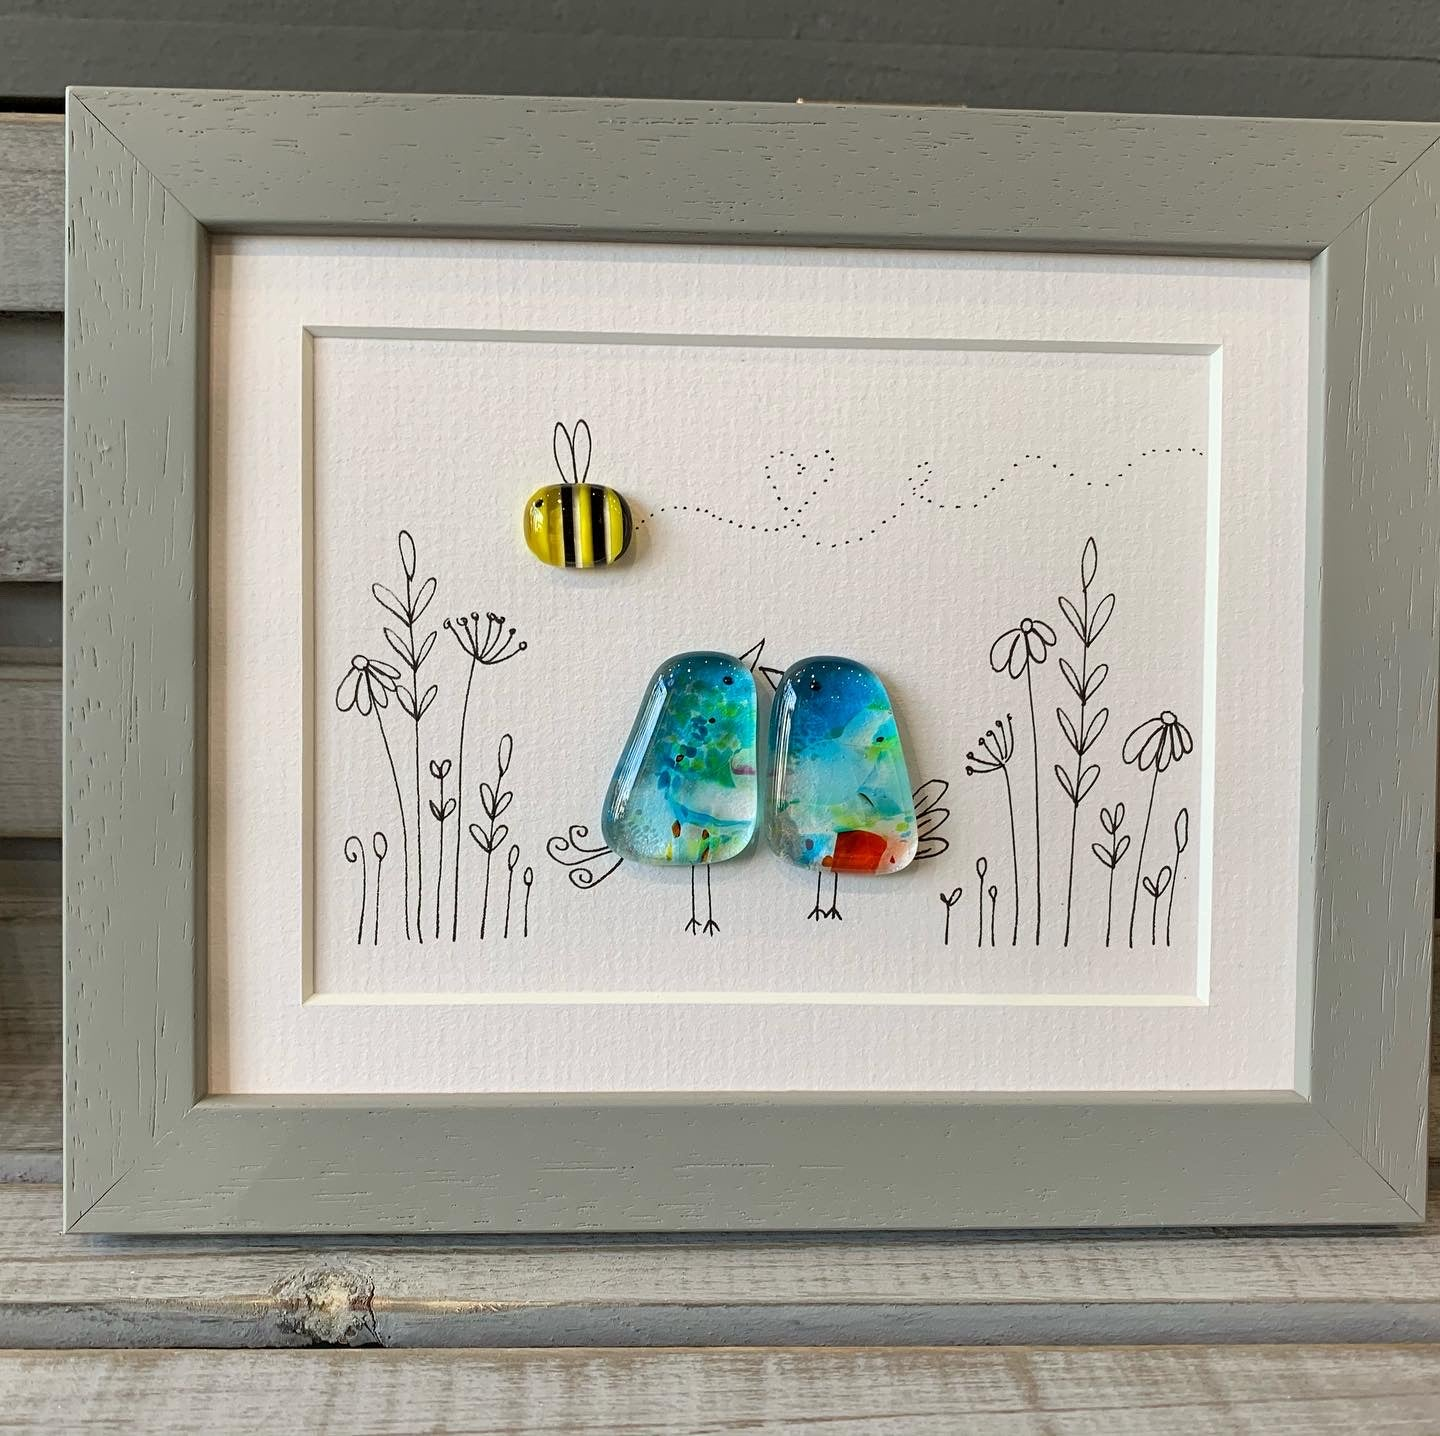 Medium birdy two fused glass birds and a bee Framed  sold on behalf of the artist